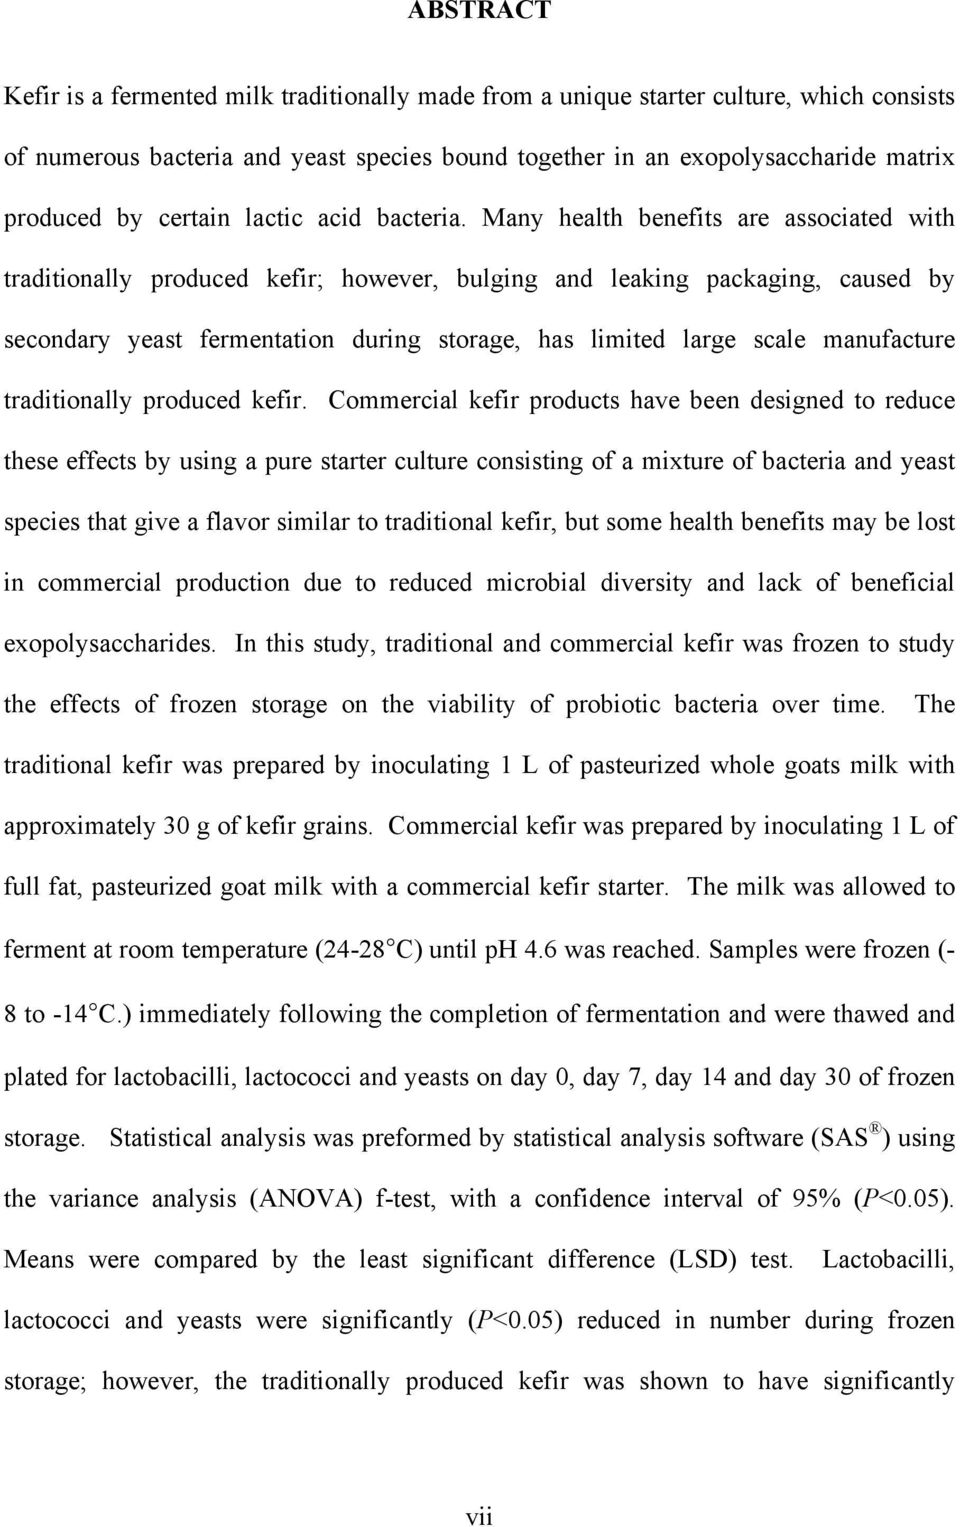 Many health benefits are associated with traditionally produced kefir; however, bulging and leaking packaging, caused by secondary yeast fermentation during storage, has limited large scale